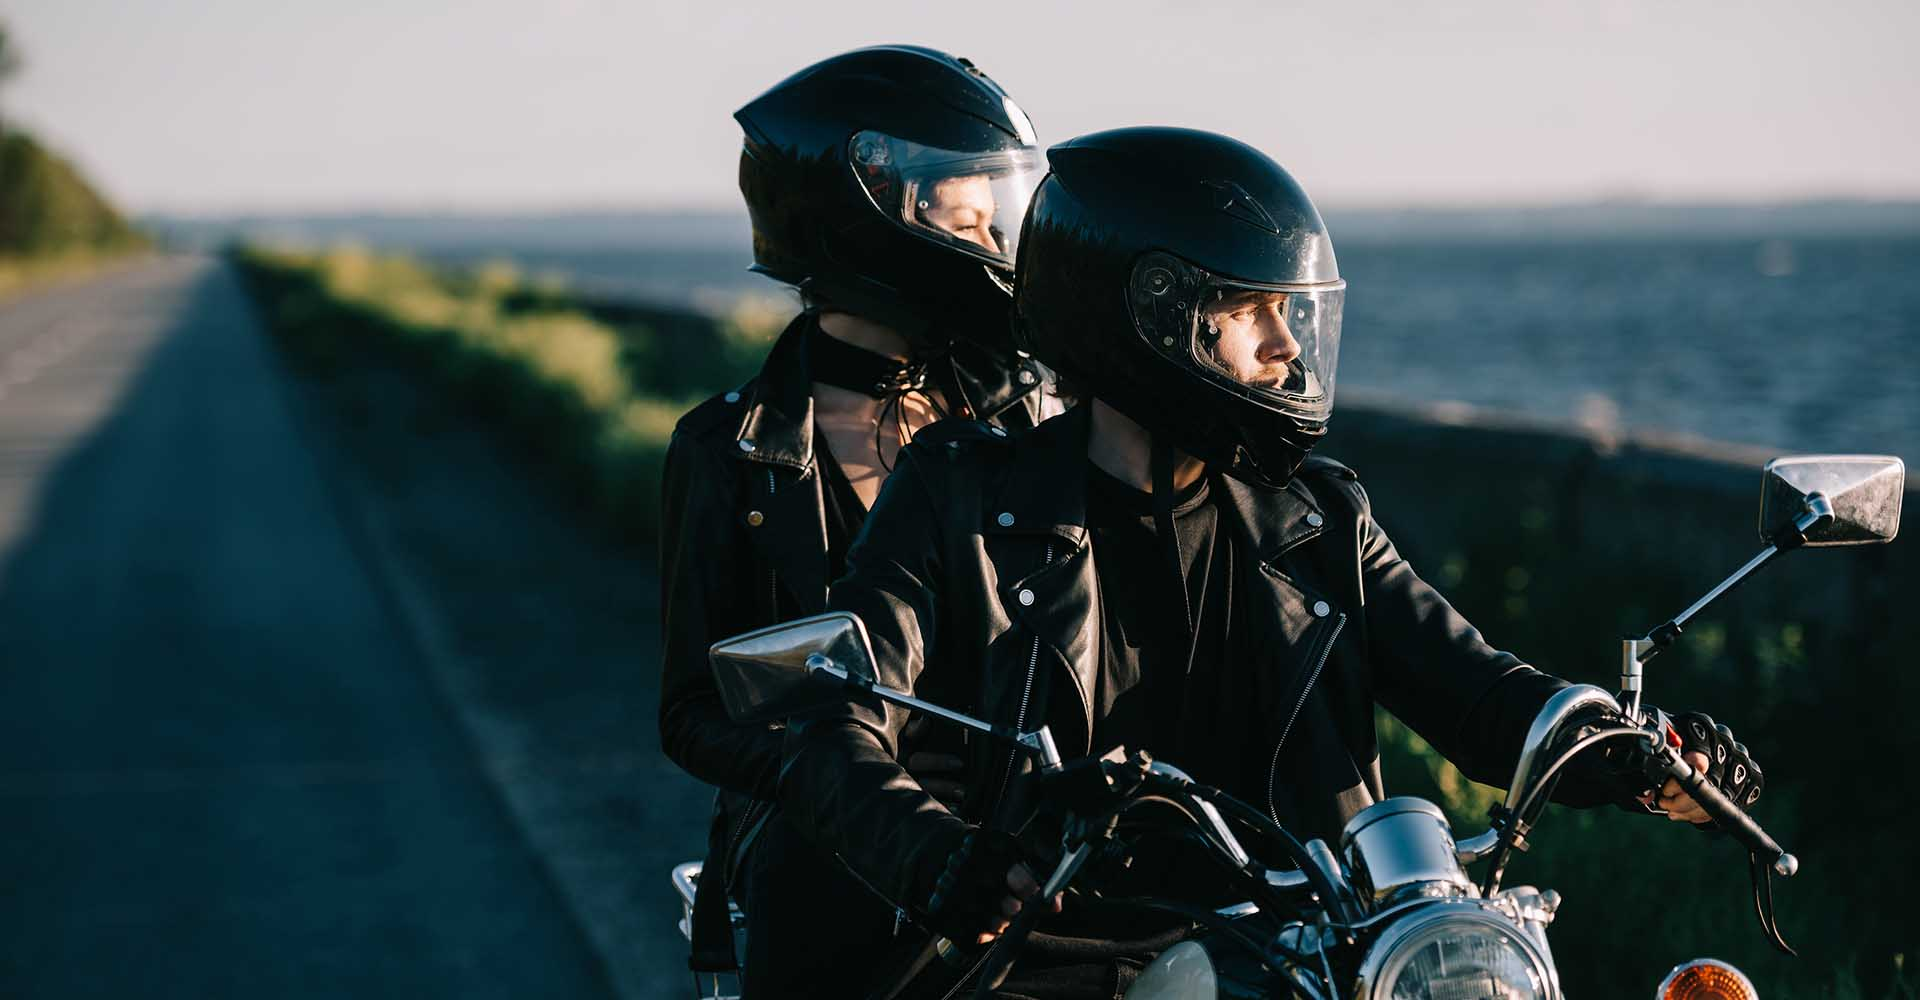 Couple of bikers in helmets riding classical motorcycle on country road.